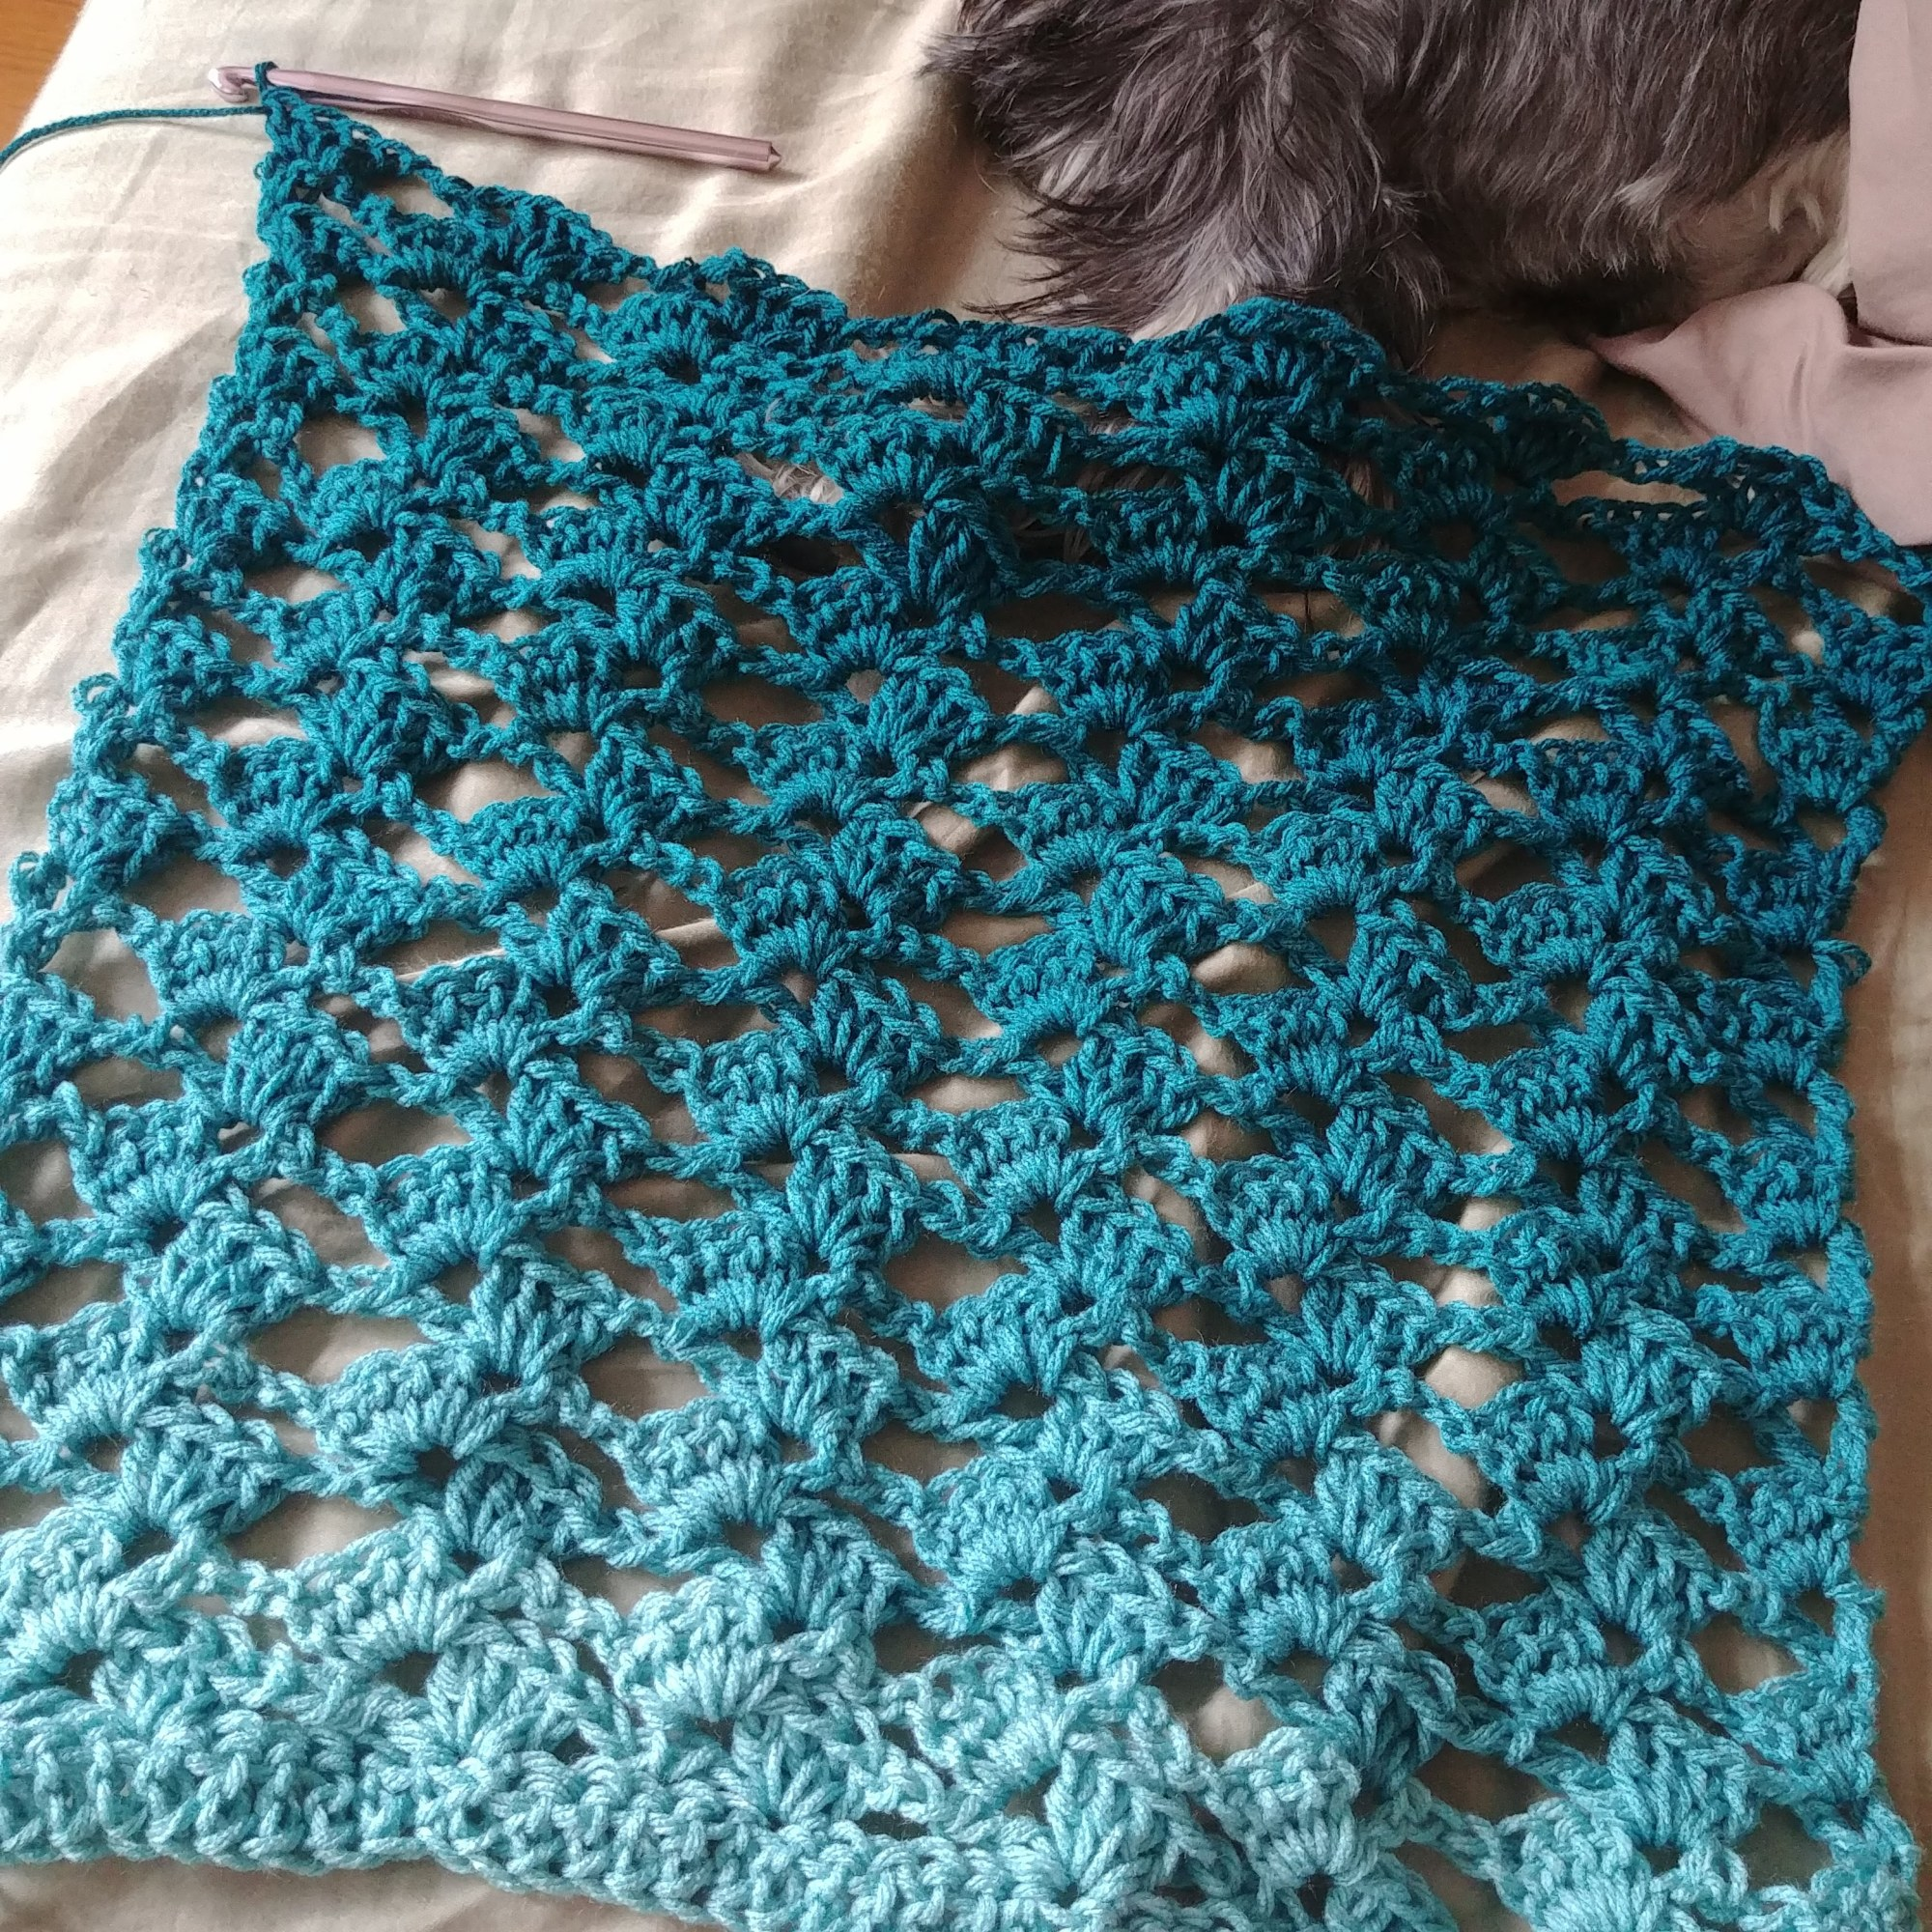 Top 5 Summer Yarns – You can knit and crochet and still stay